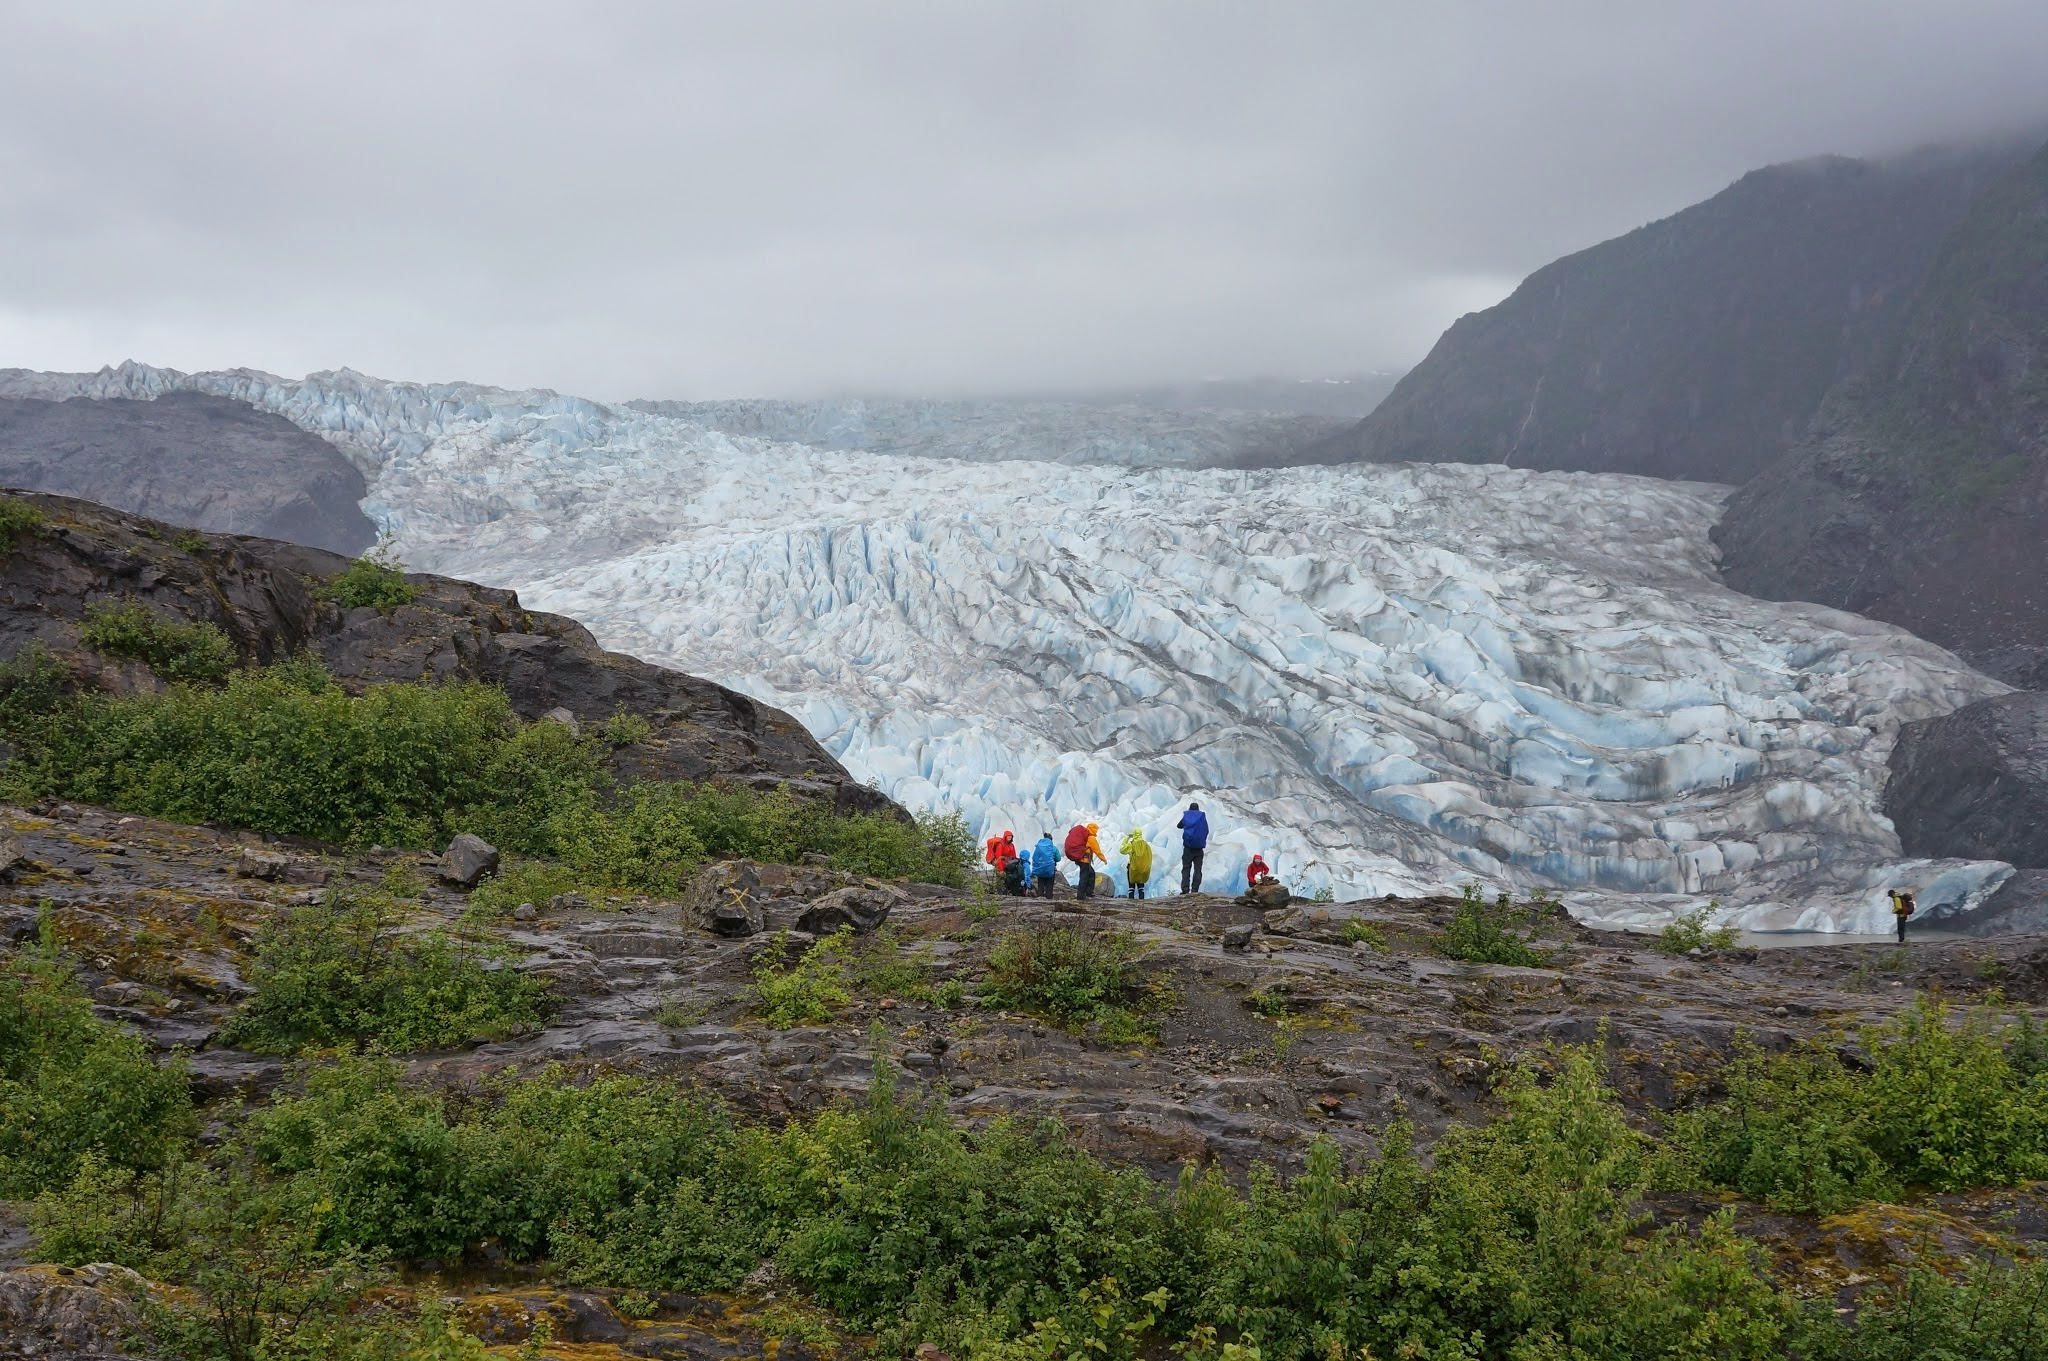 Students look out at the Mendenhall Glacier, and reflect on their new home for the next two months. (Photo by: Alexandre Mischler)